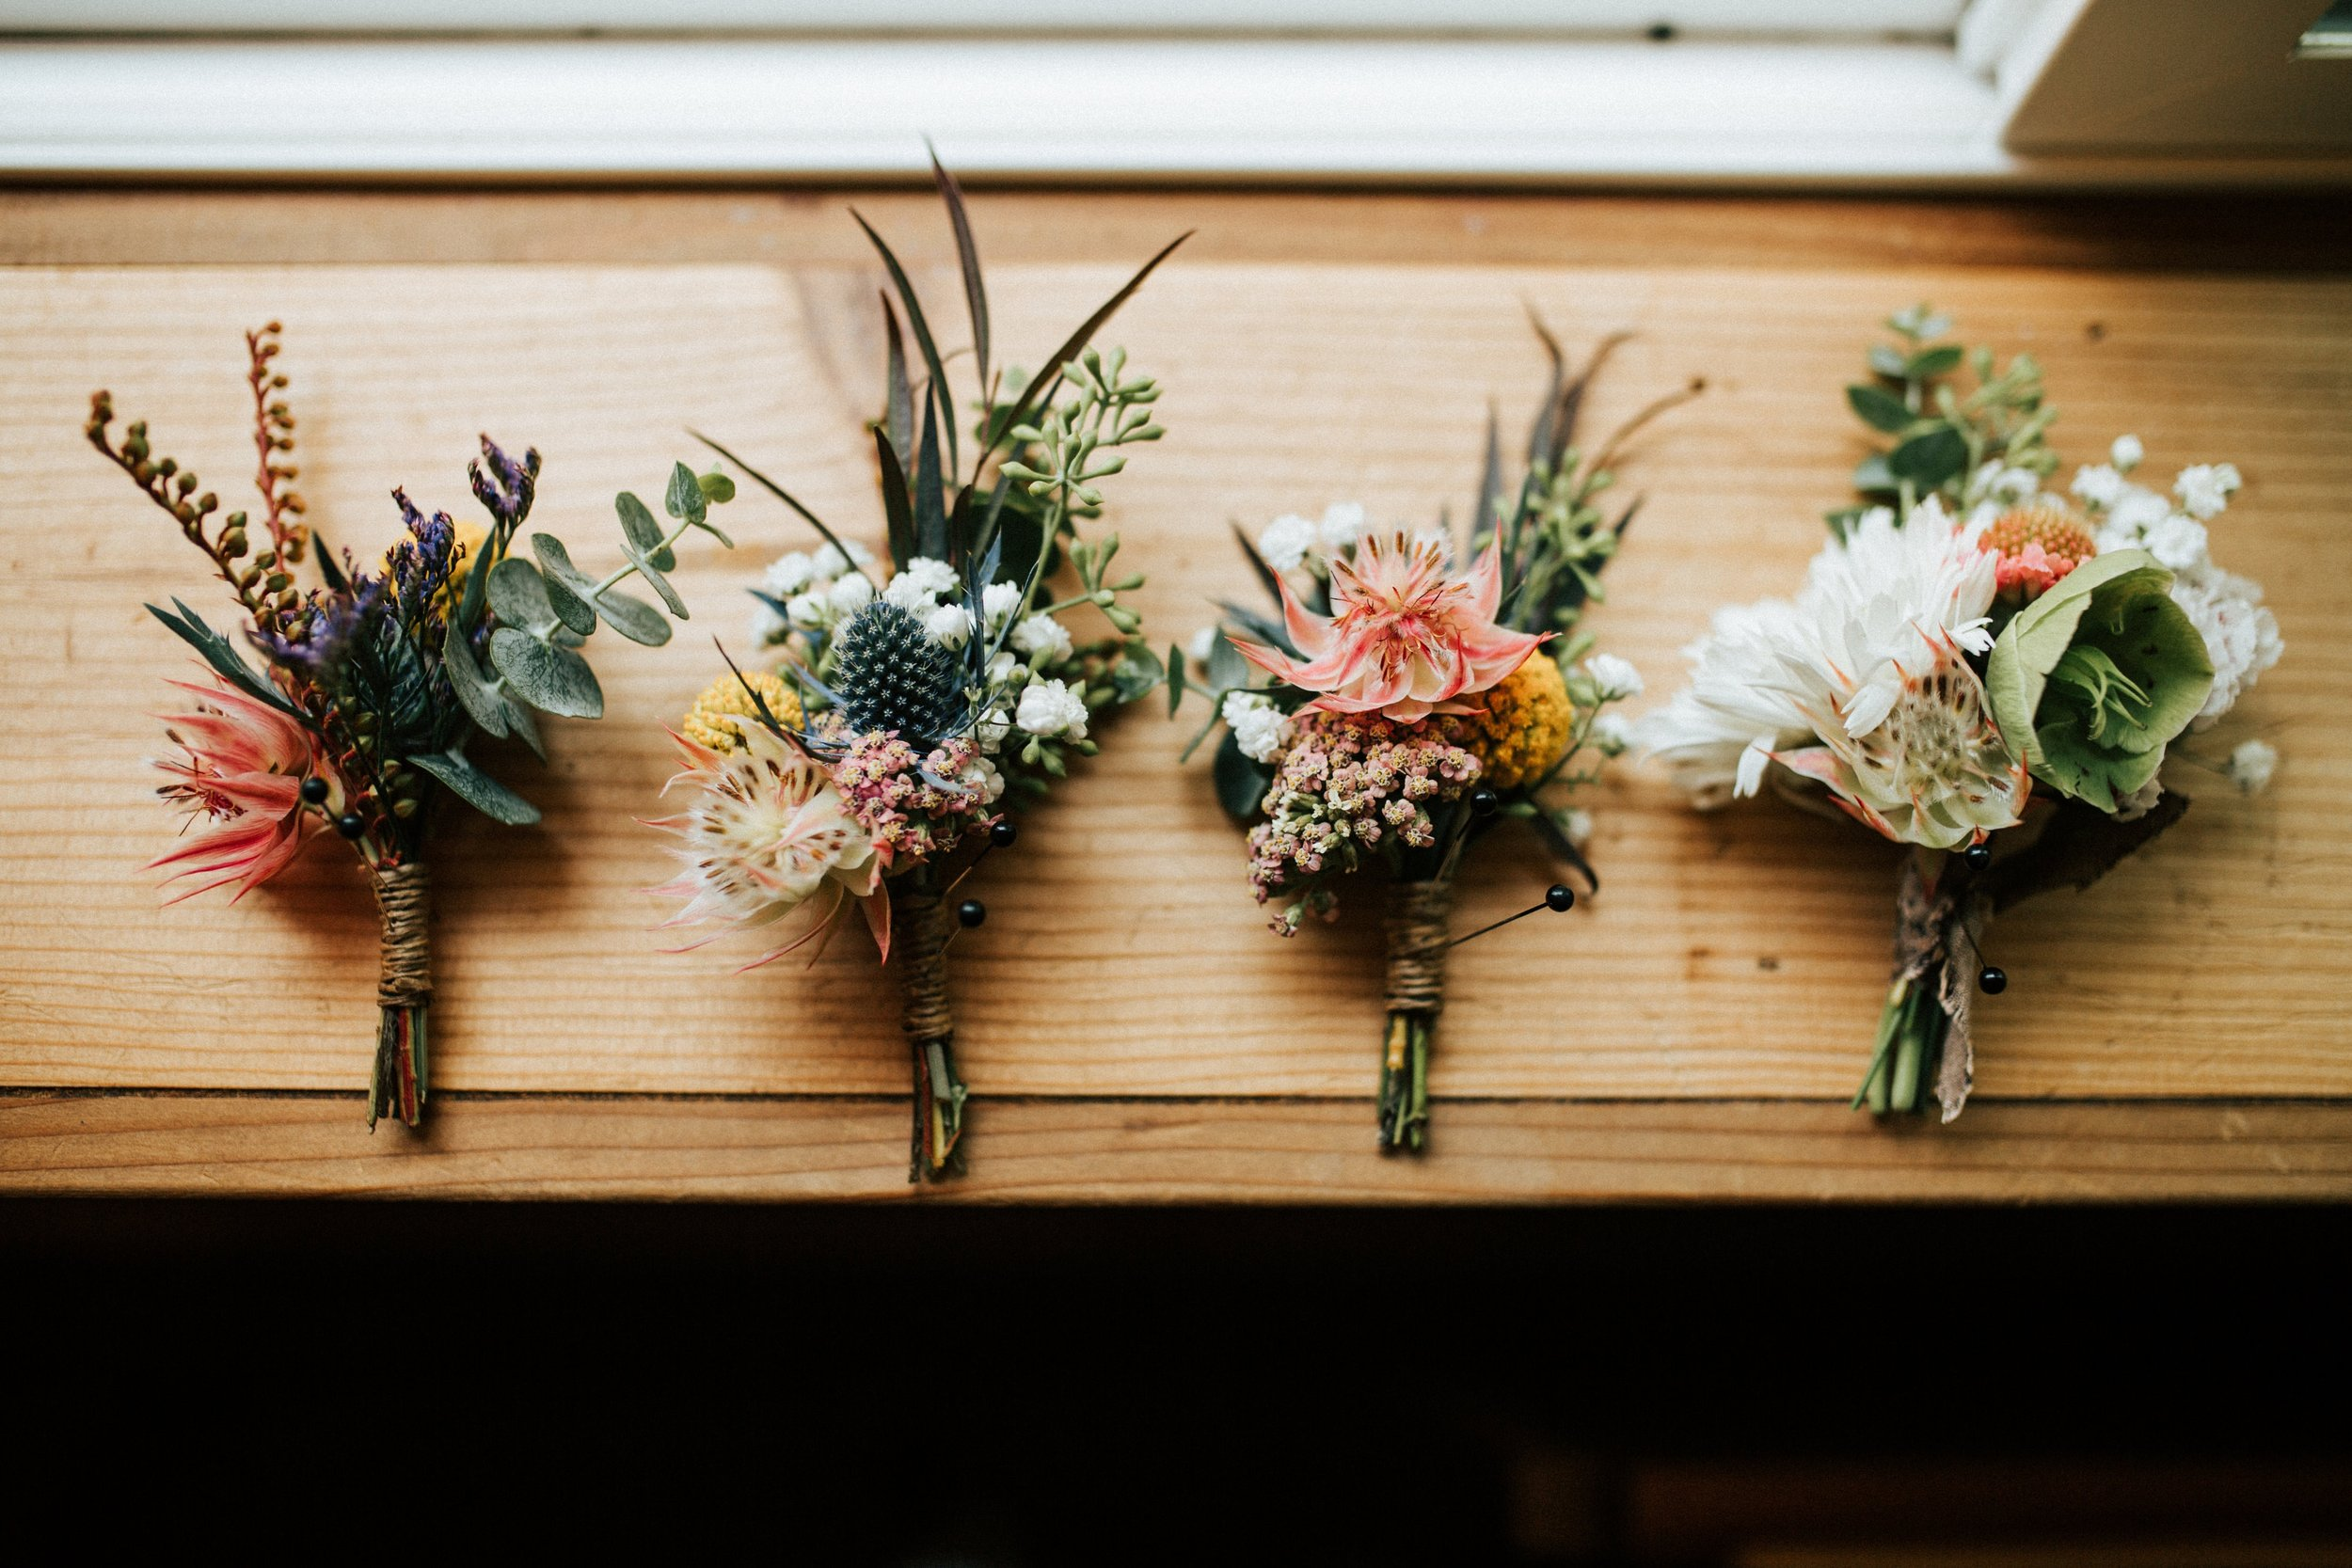 Wild flower wedding bouquets.jpg